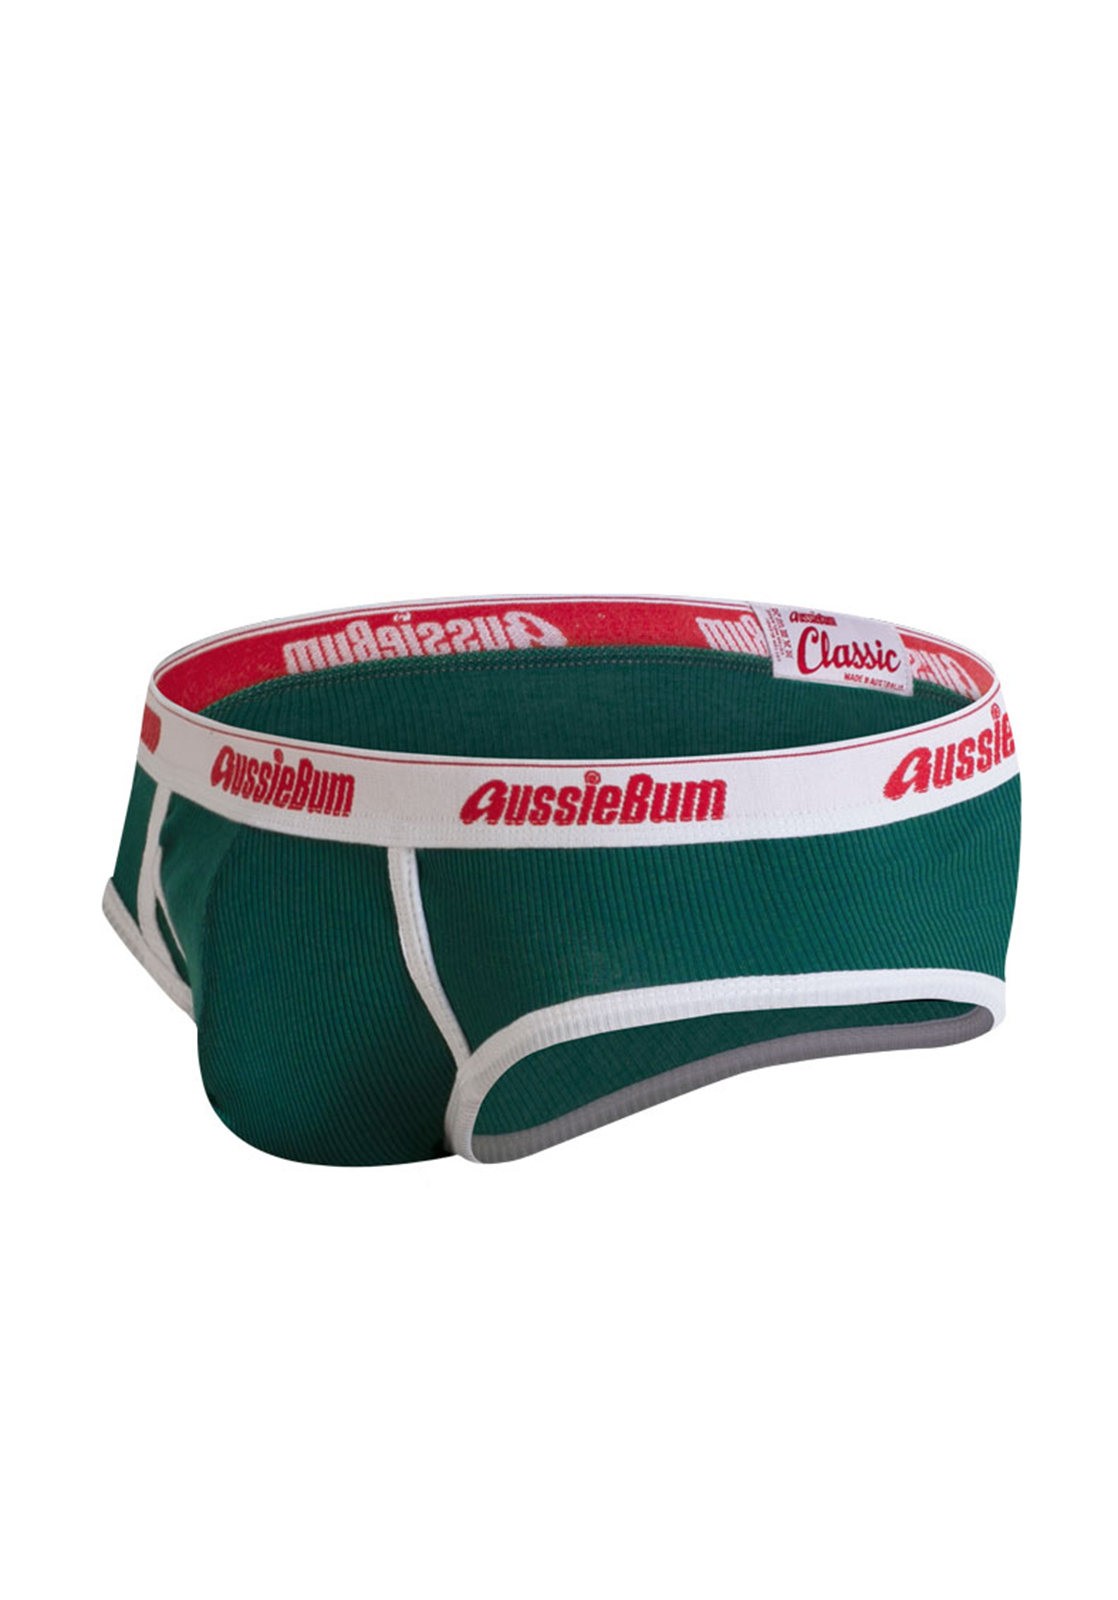 Aussiebum green marle XL Brief Classic Original